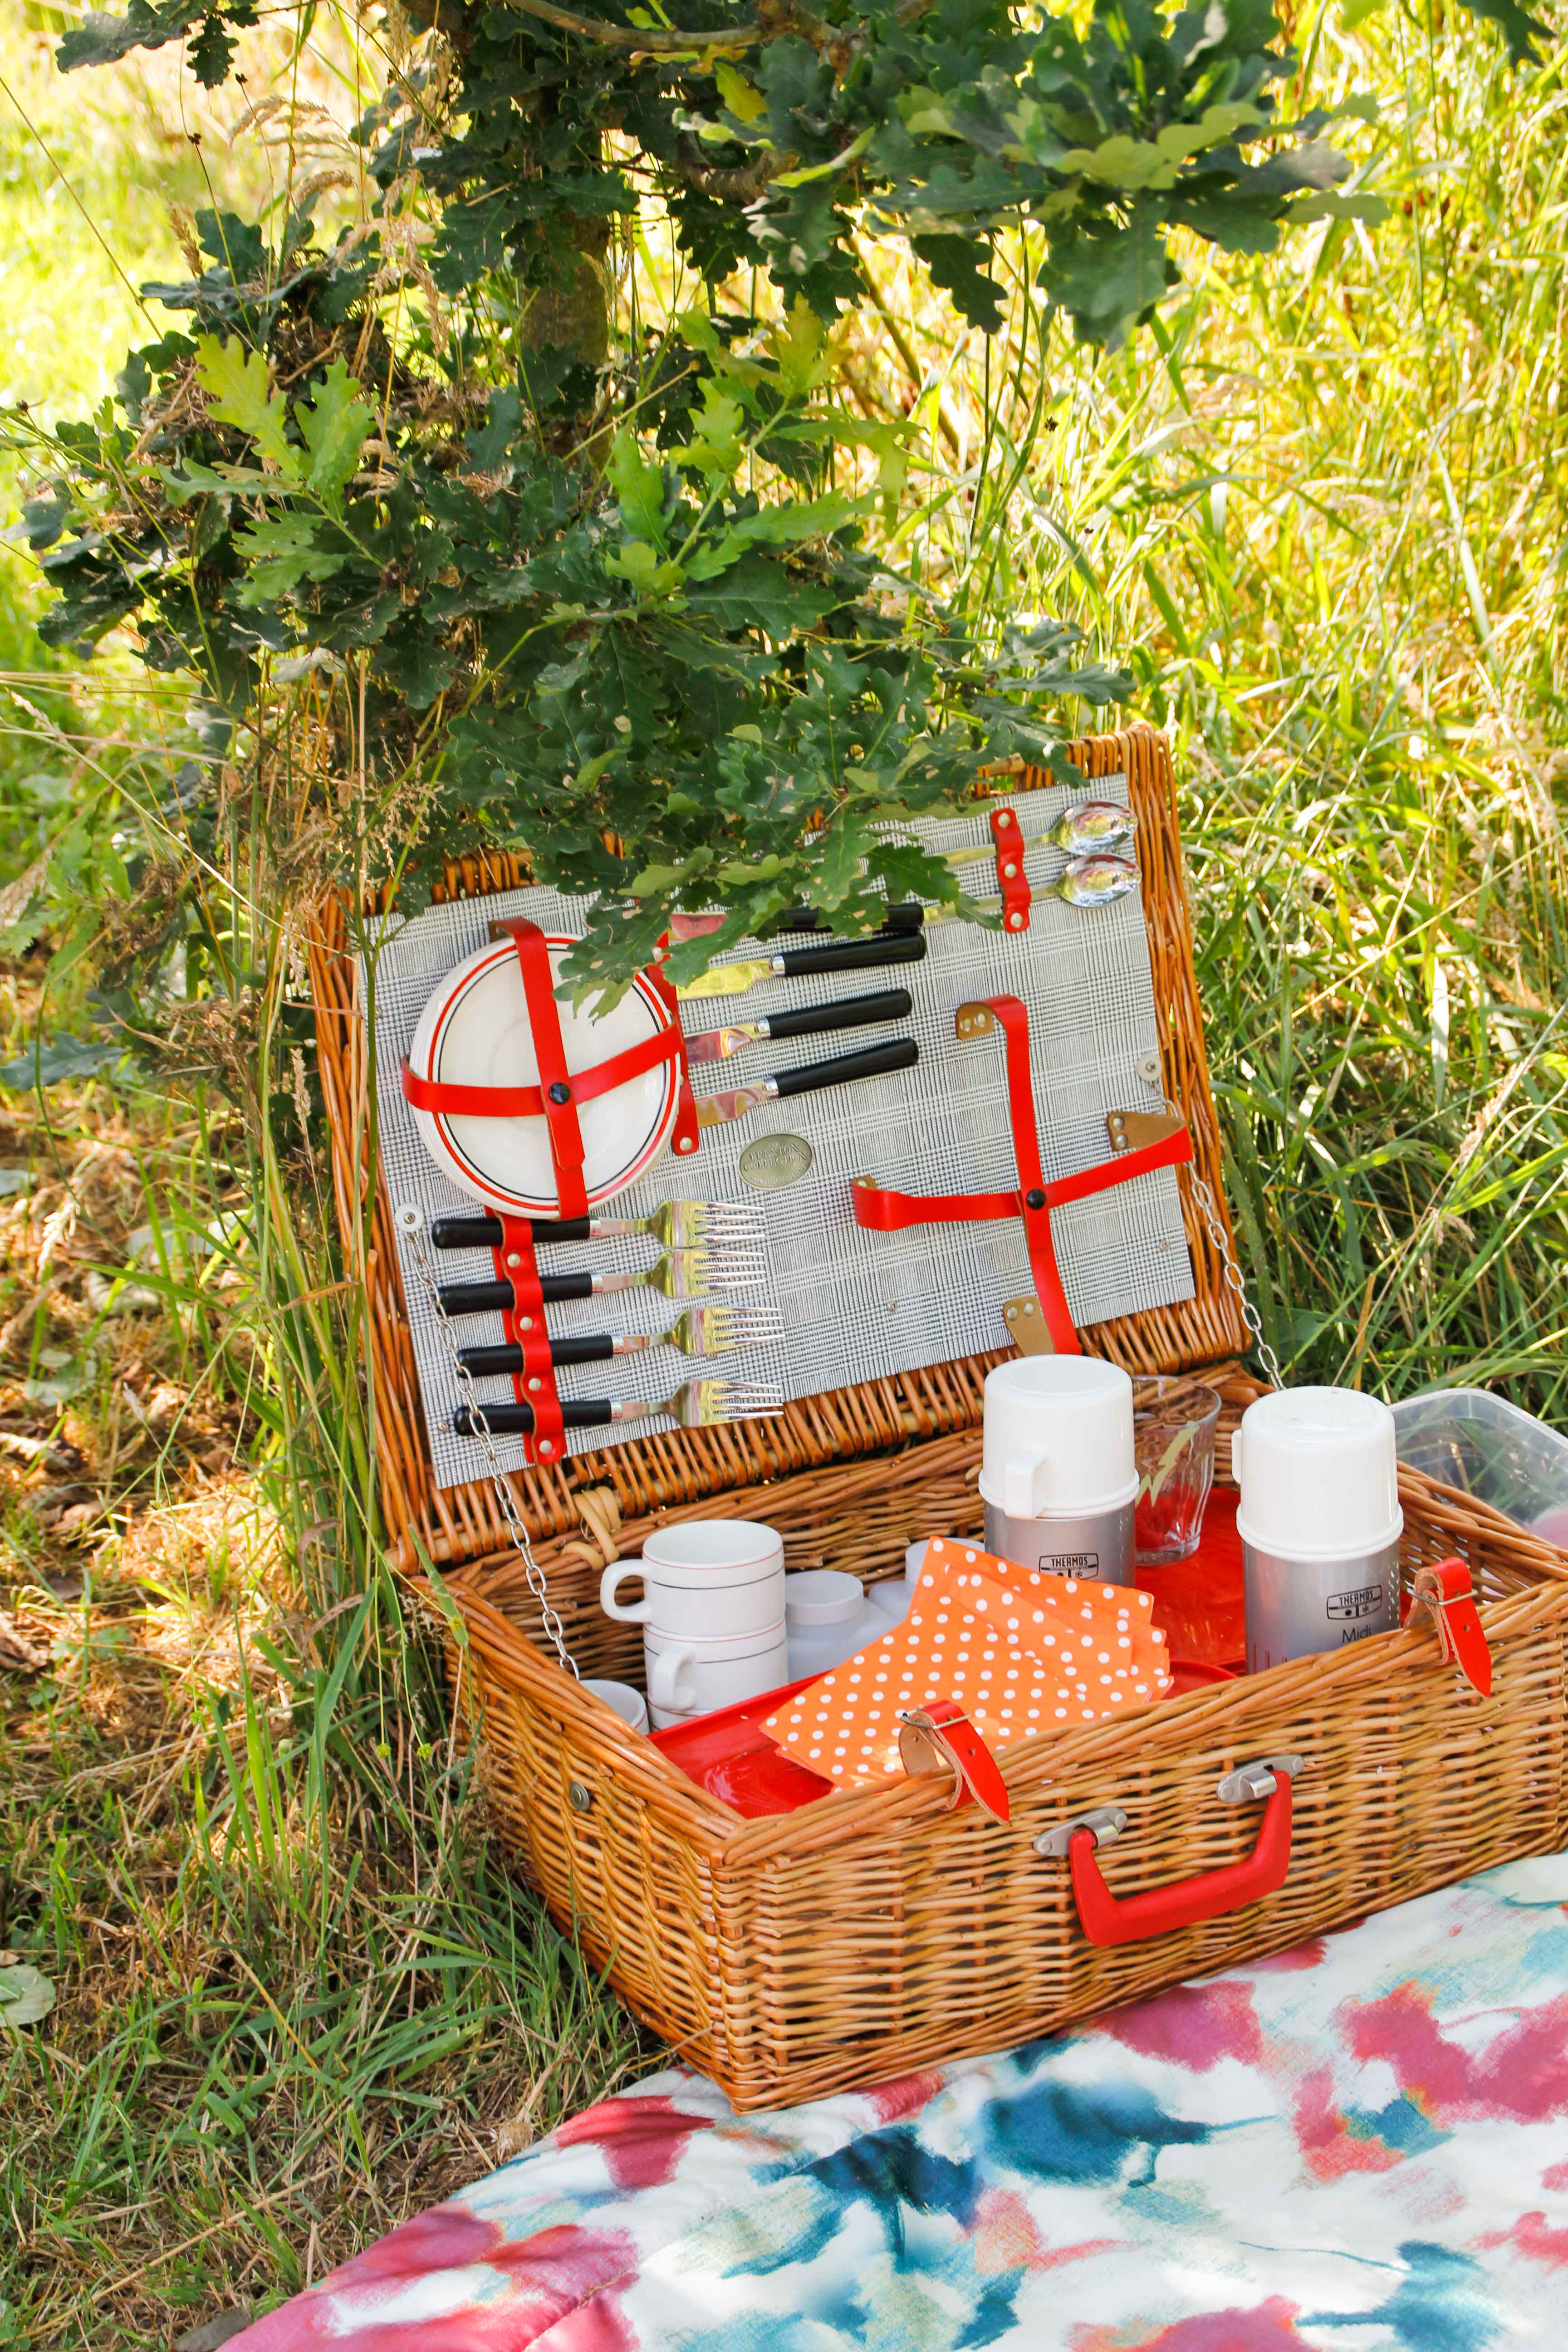 Picnic in the FR-One forest